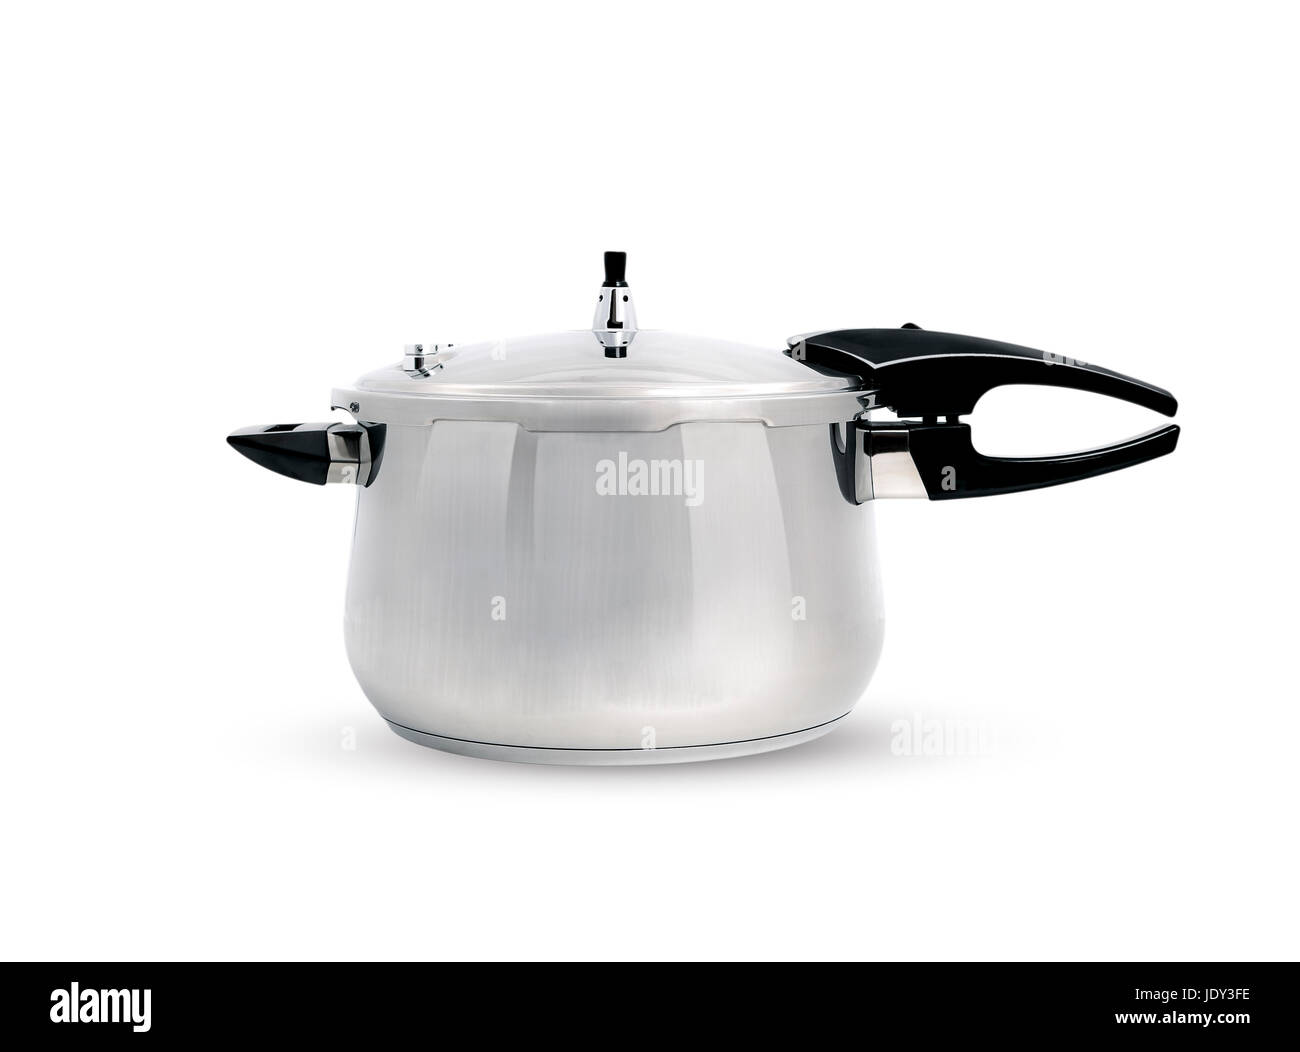 Pressure Cooker - Stock Image